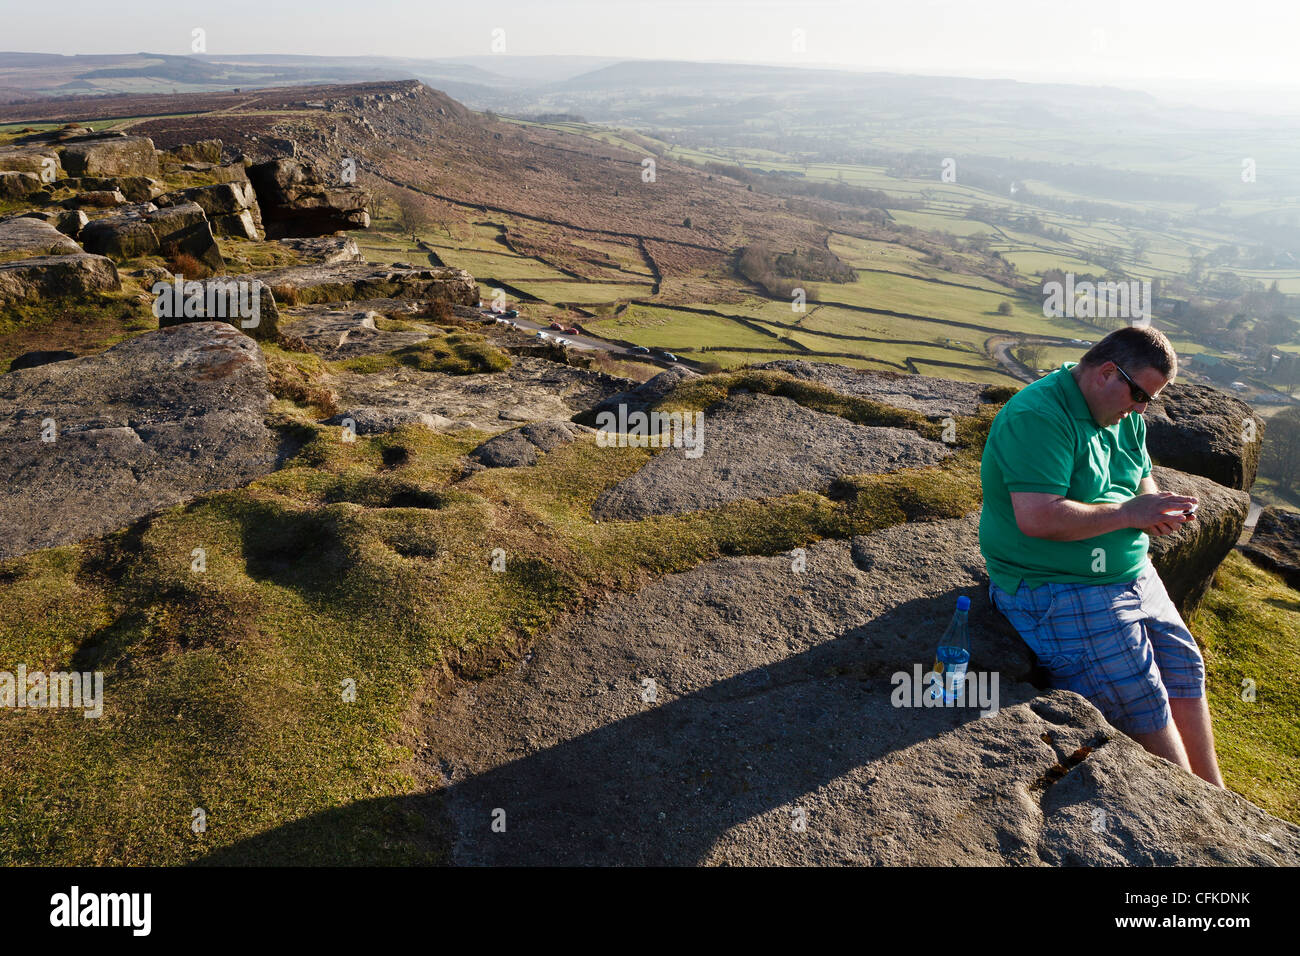 A tourist turns his back on the beautiful view to write a text message at Curbar Edge in the Peak District National - Stock Image